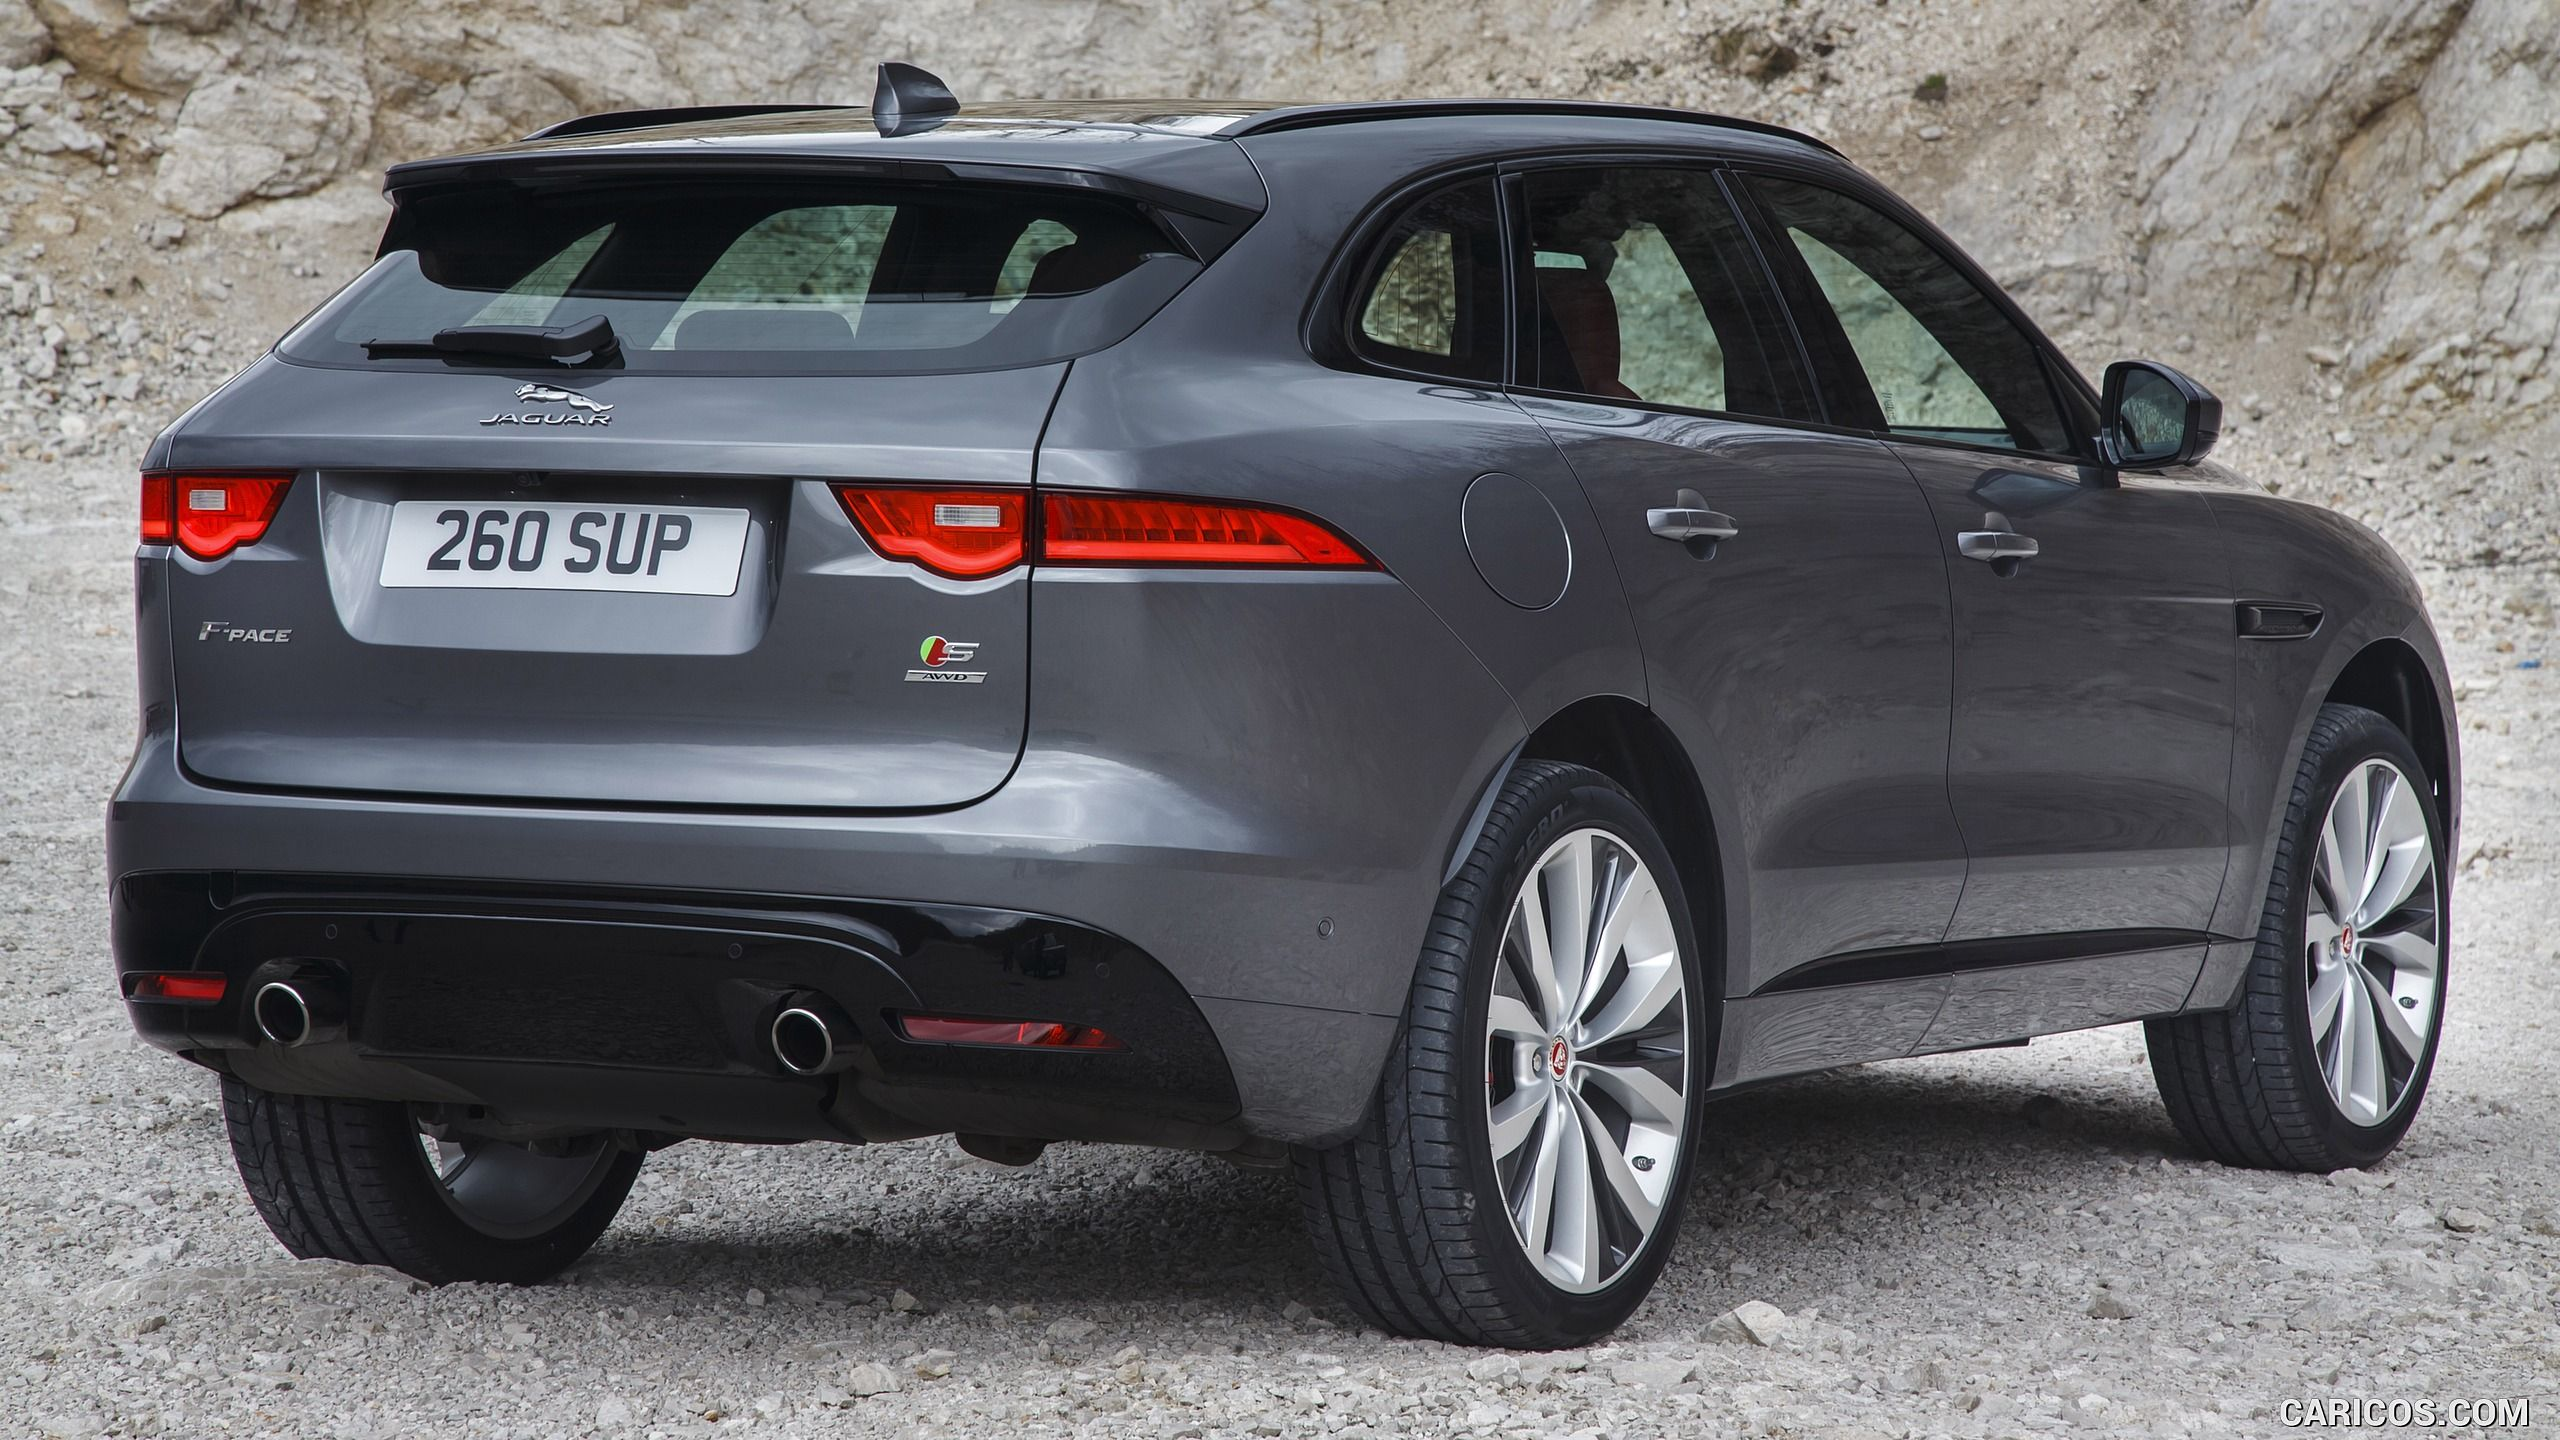 2017 Jaguar F Pace S Wallpaper Jaguar Jaguar Daimler Luxury Suv